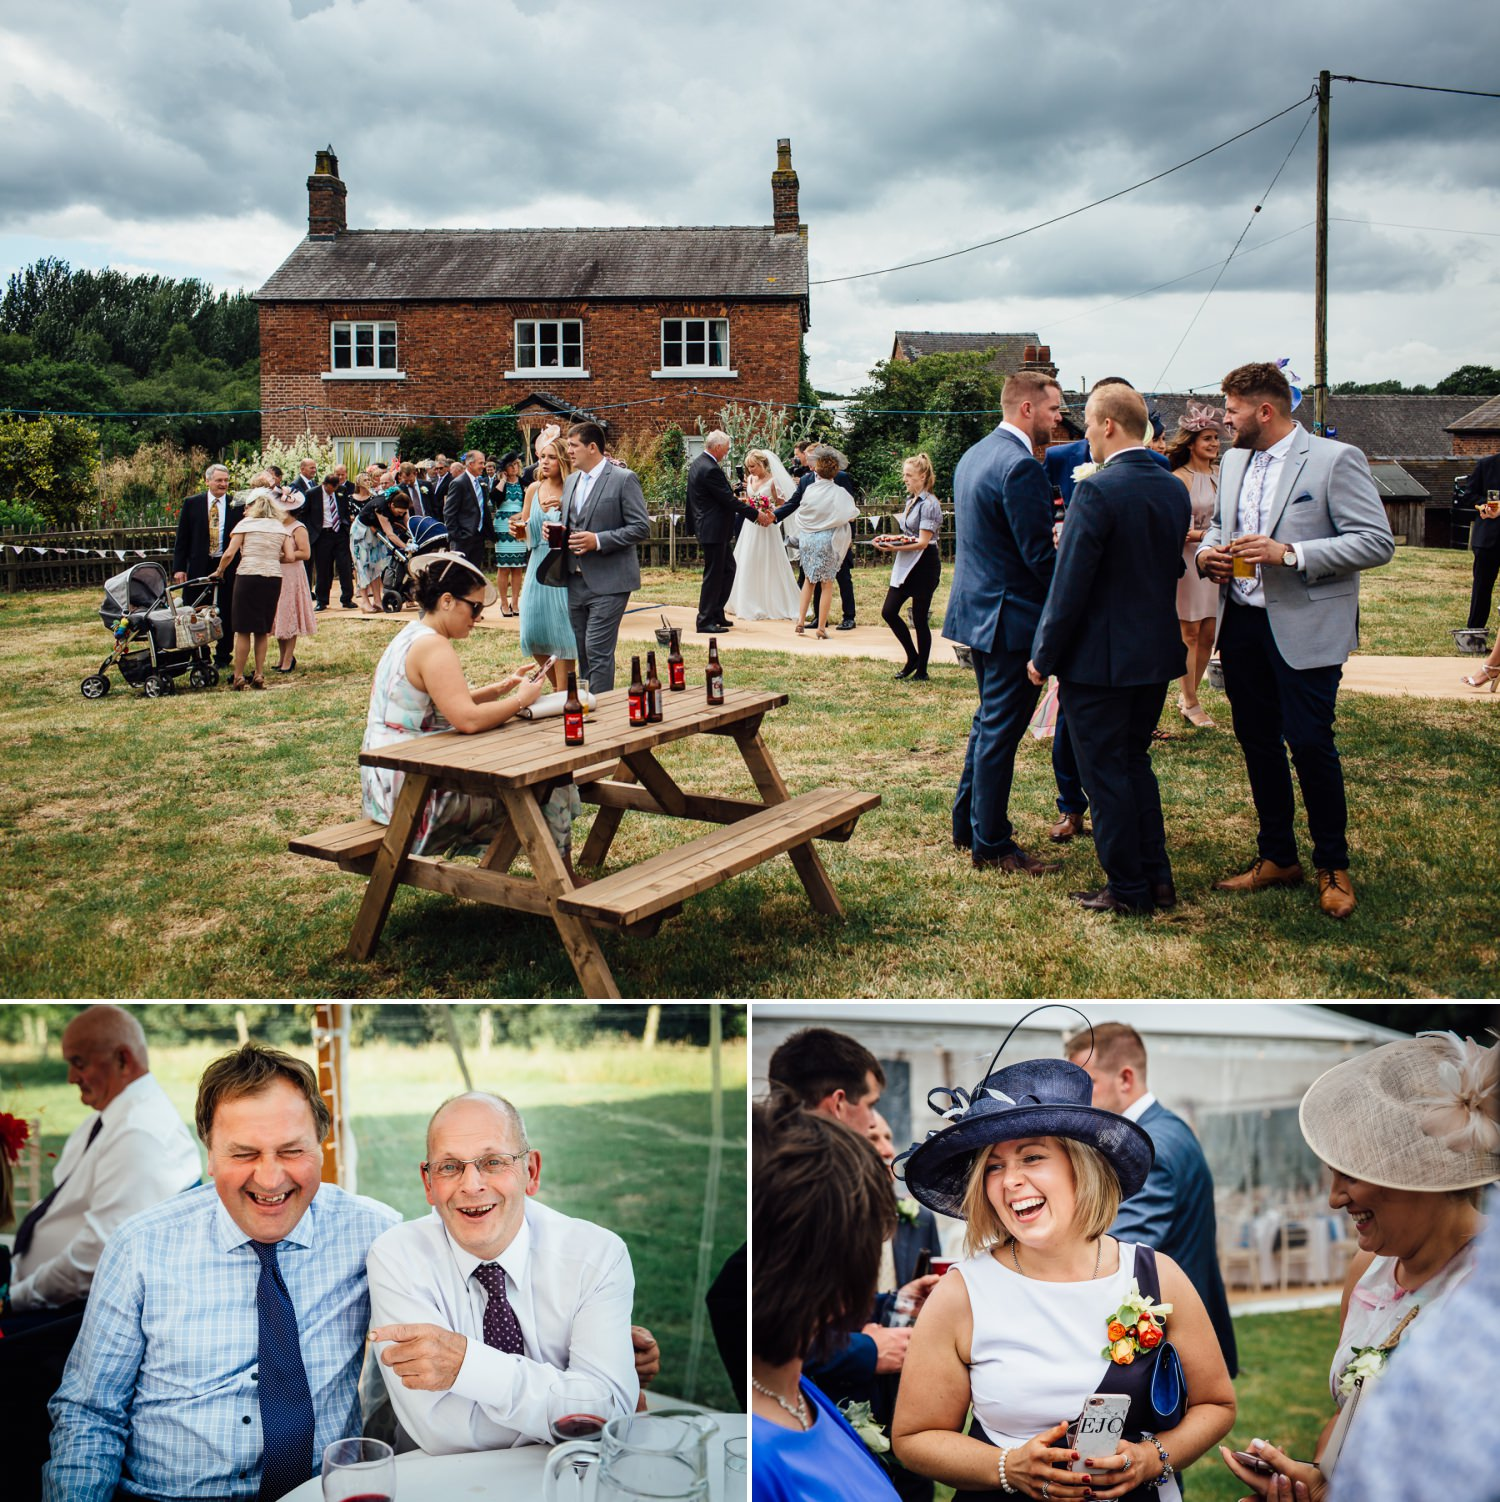 Guests mingling at farm wedding in Macclesfield, Cheshire